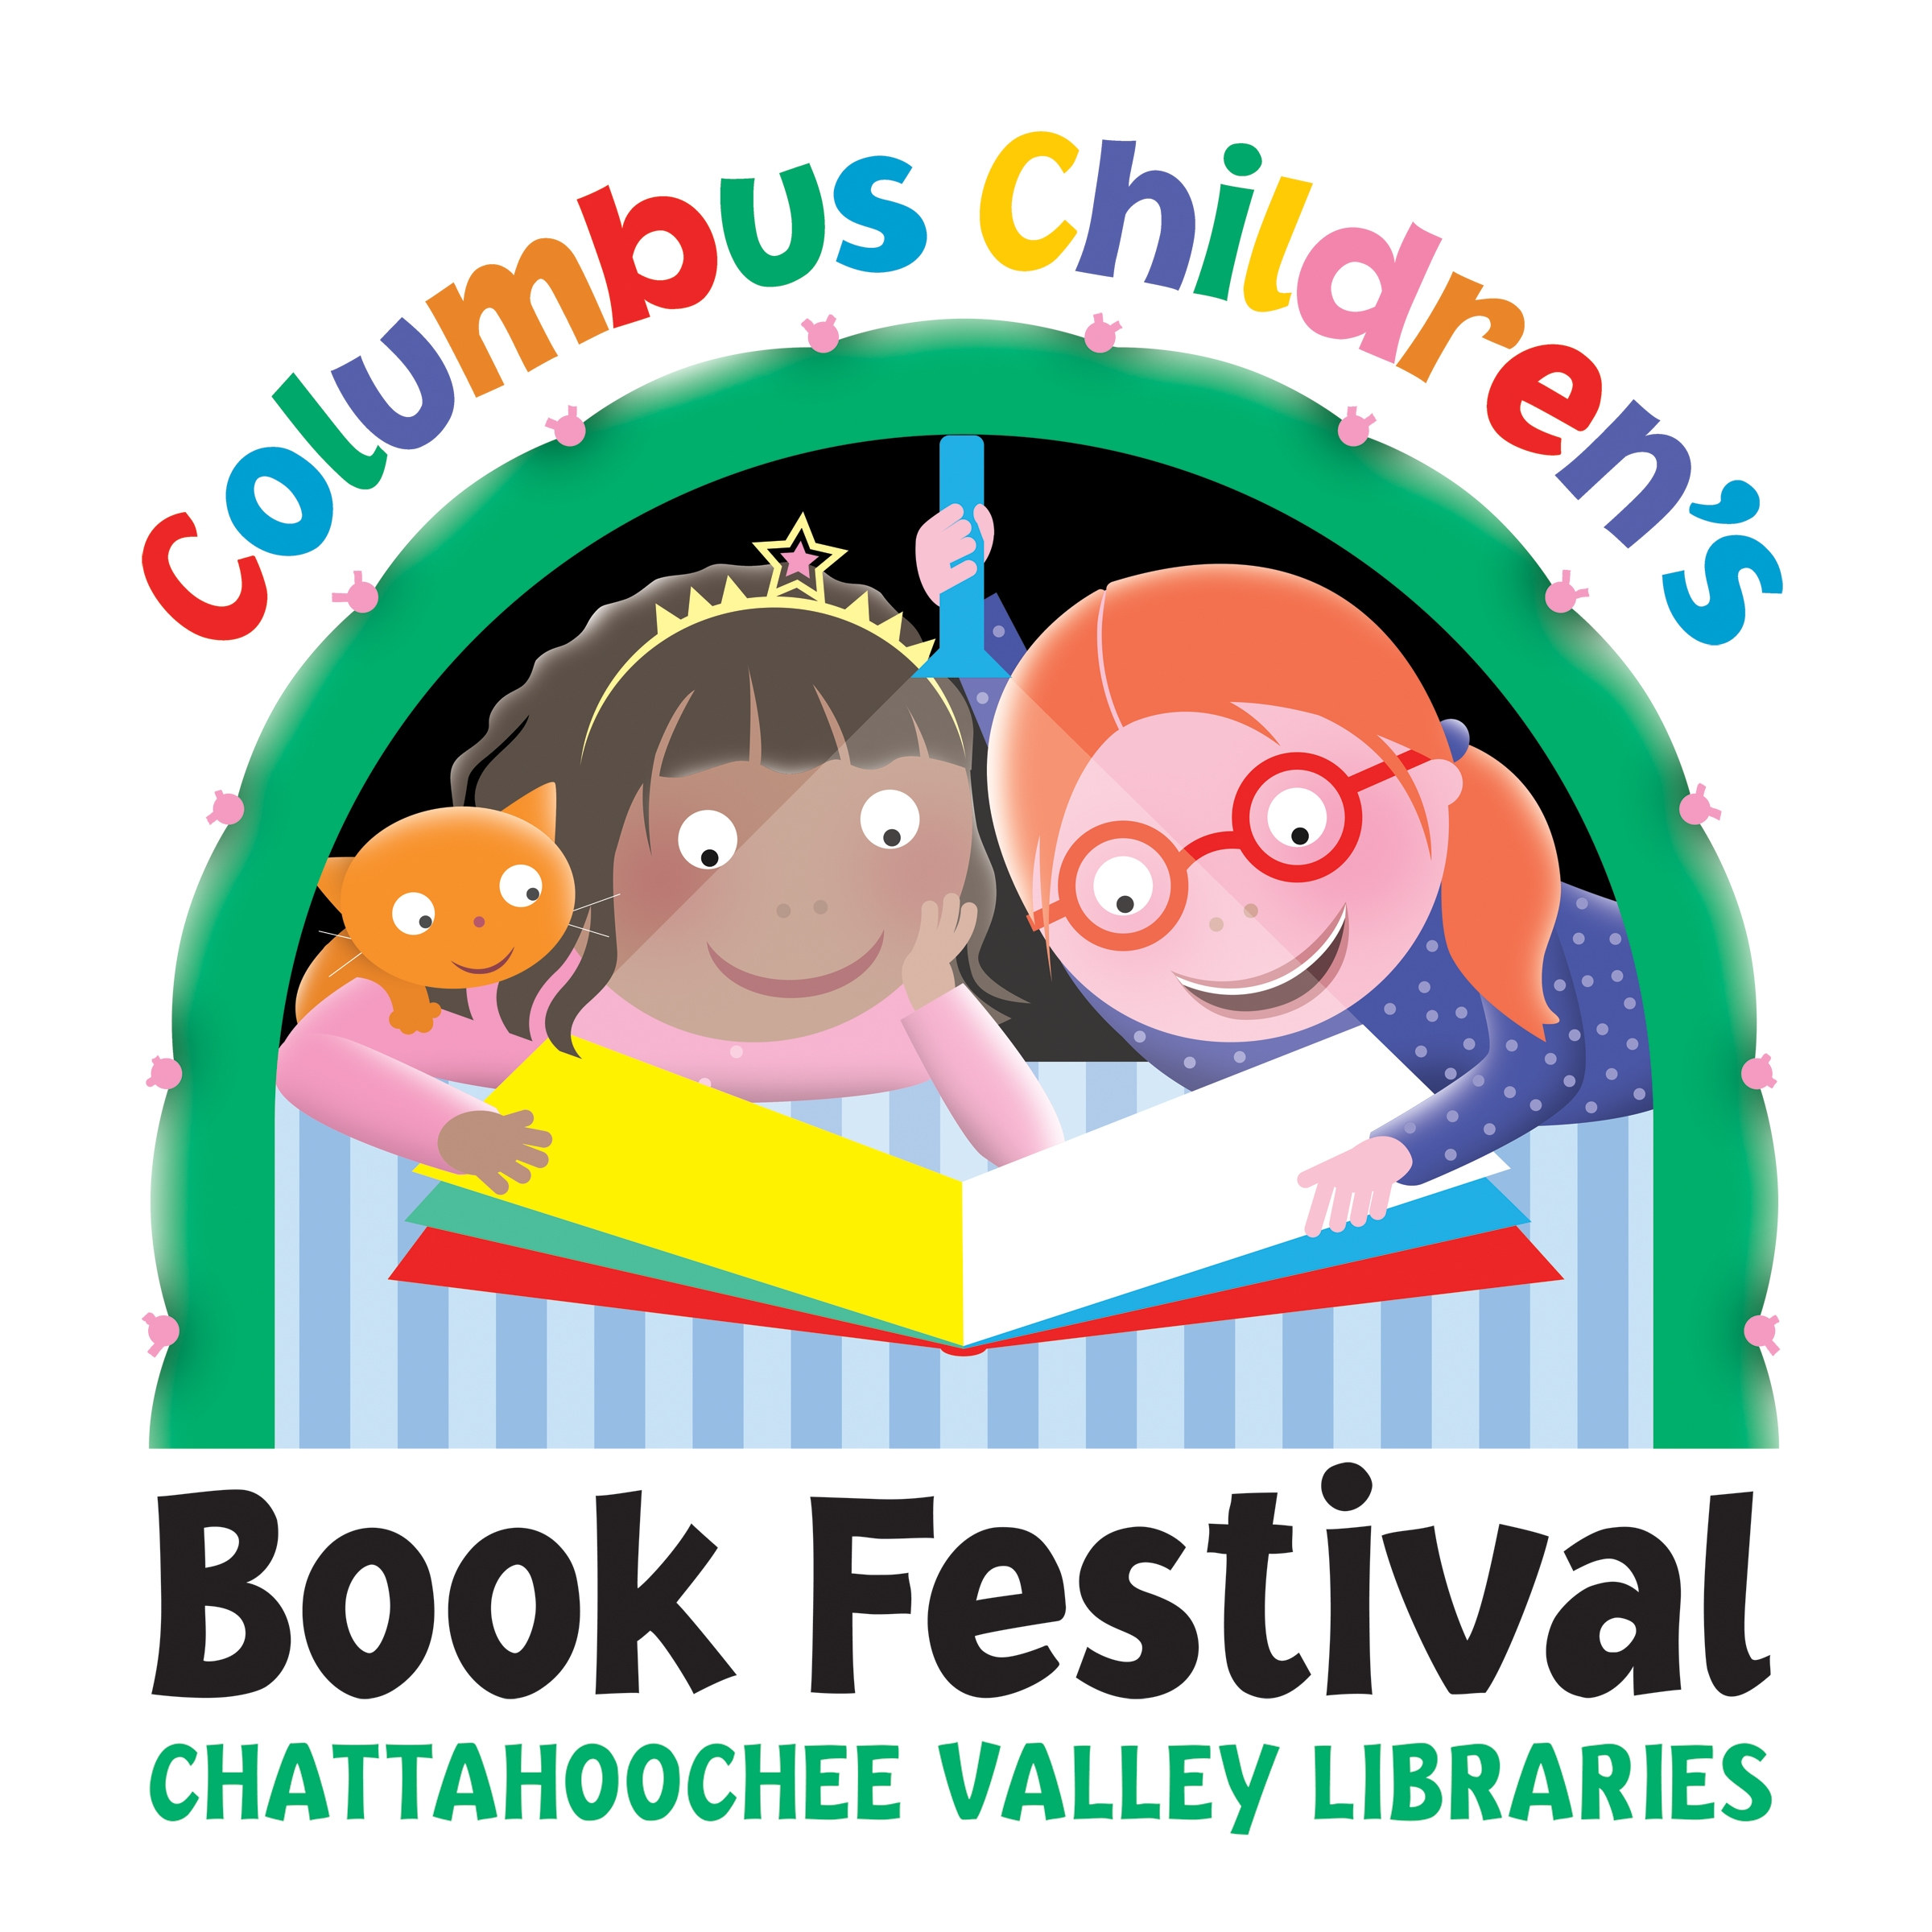 6th Annual Columbus Children's Book Festival